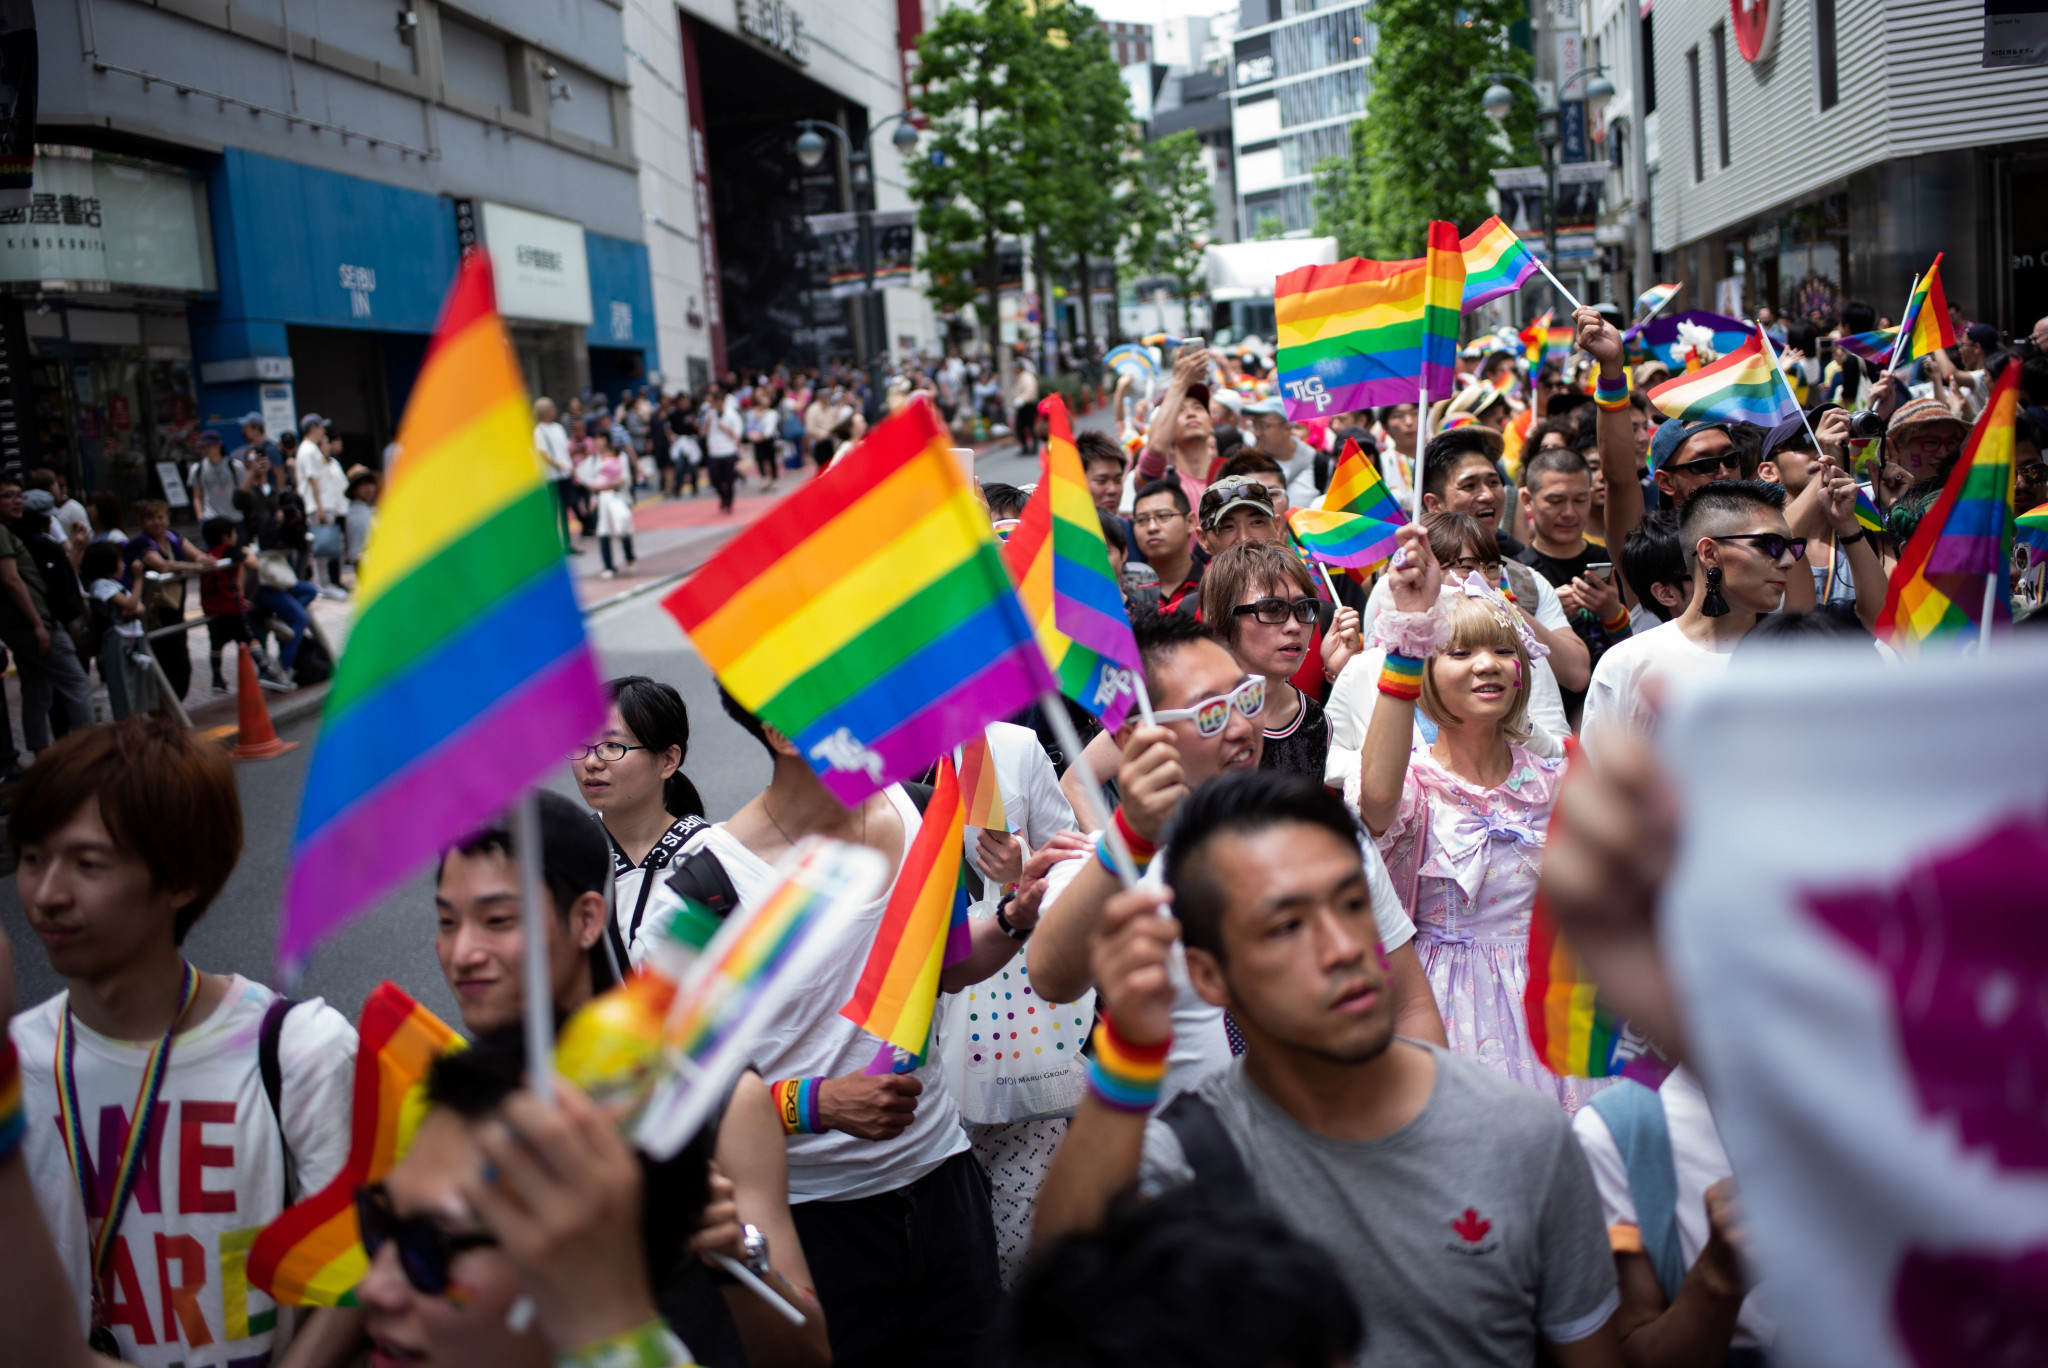 Human rights groups to launch equality campaign in Japan ahead of Tokyo 2020